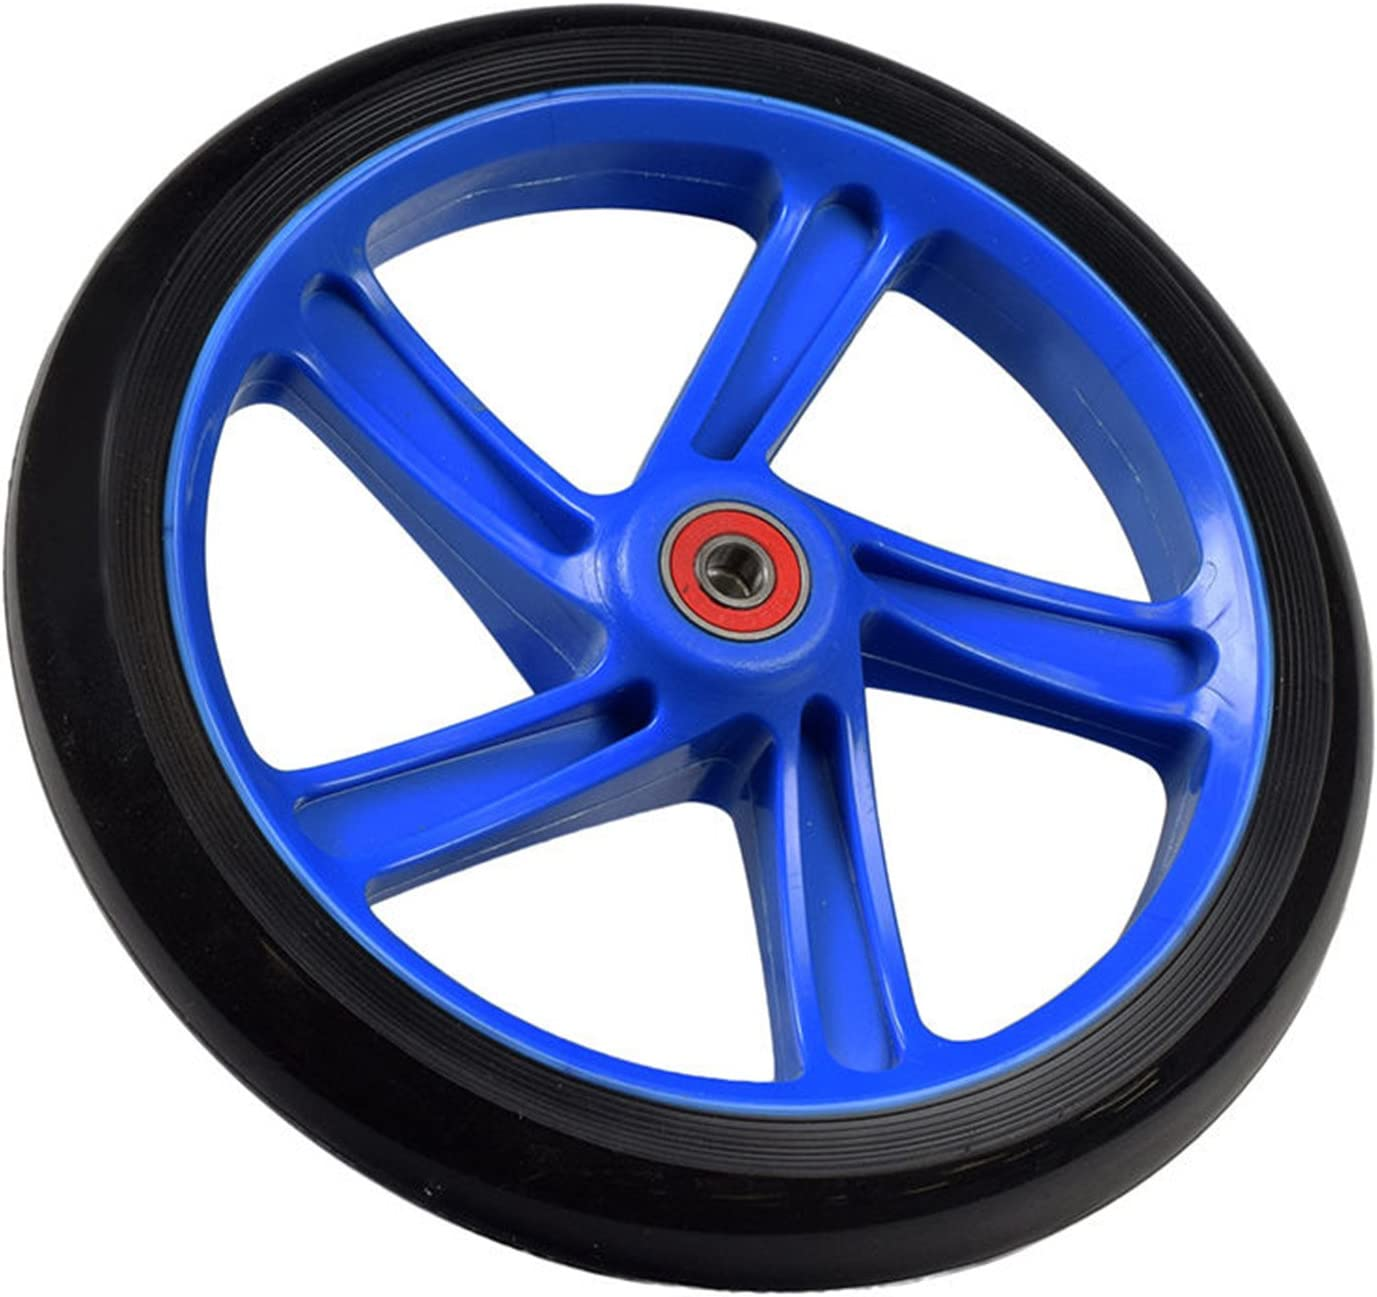 2x BLUE 100mm Replacement Wheels ABEC-7 Bearings for Razor Pro Kick Scooter